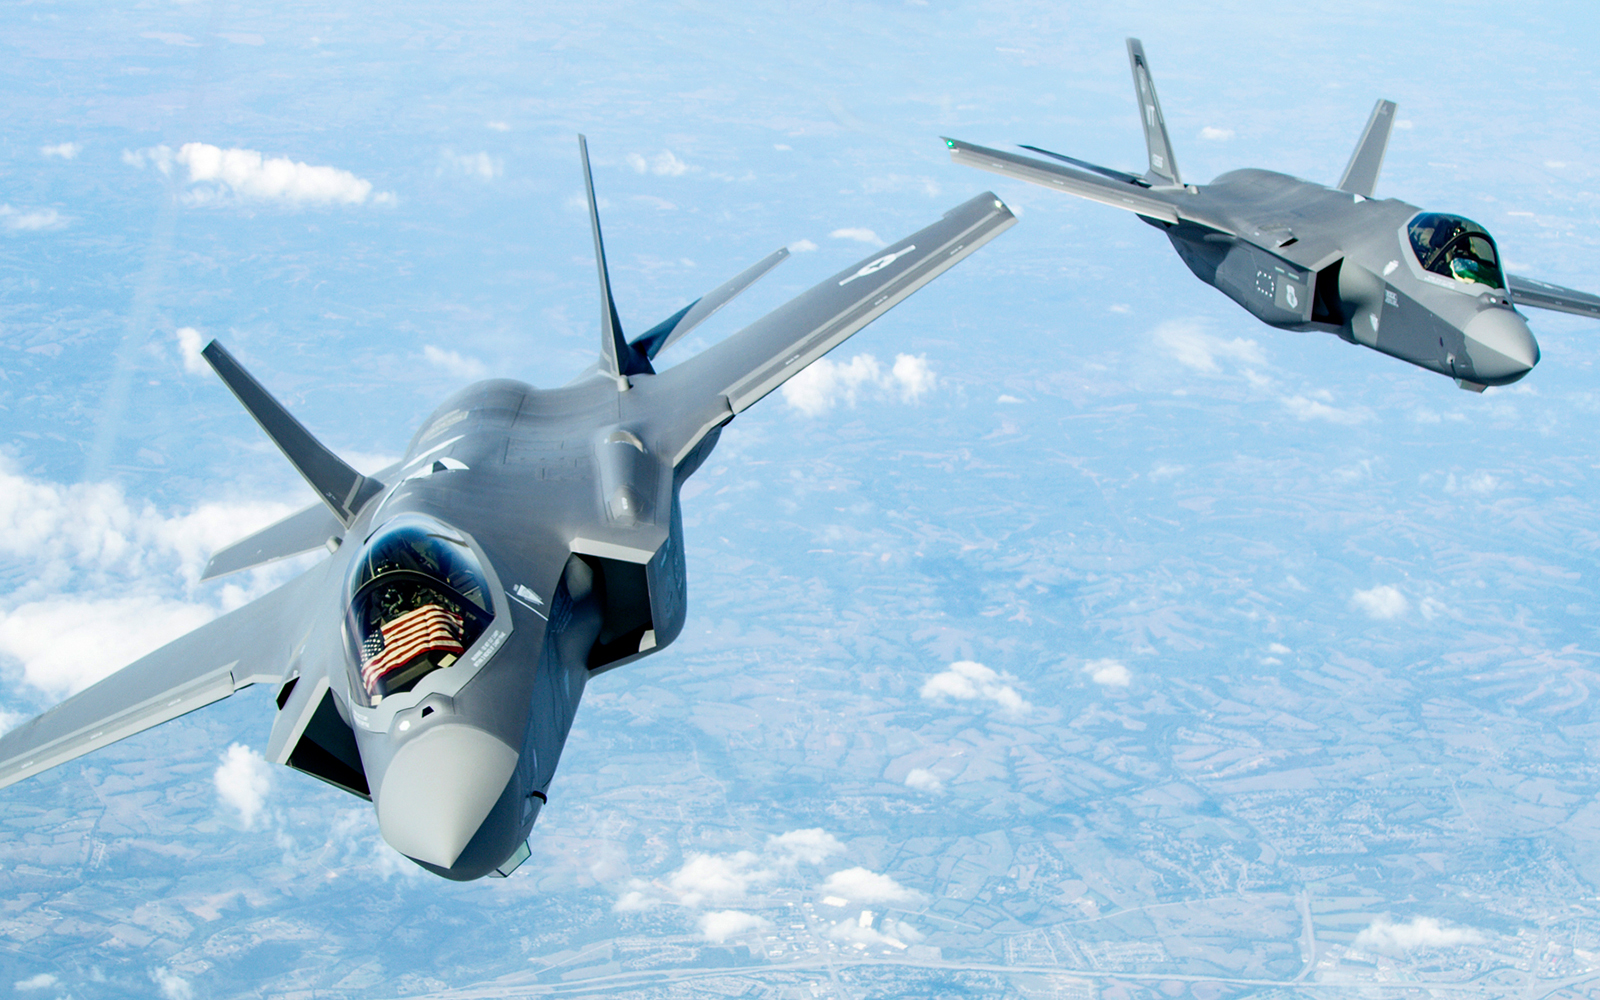 UAE confirms it signed deal to buy F-35 jets from US on last day of Trump's term